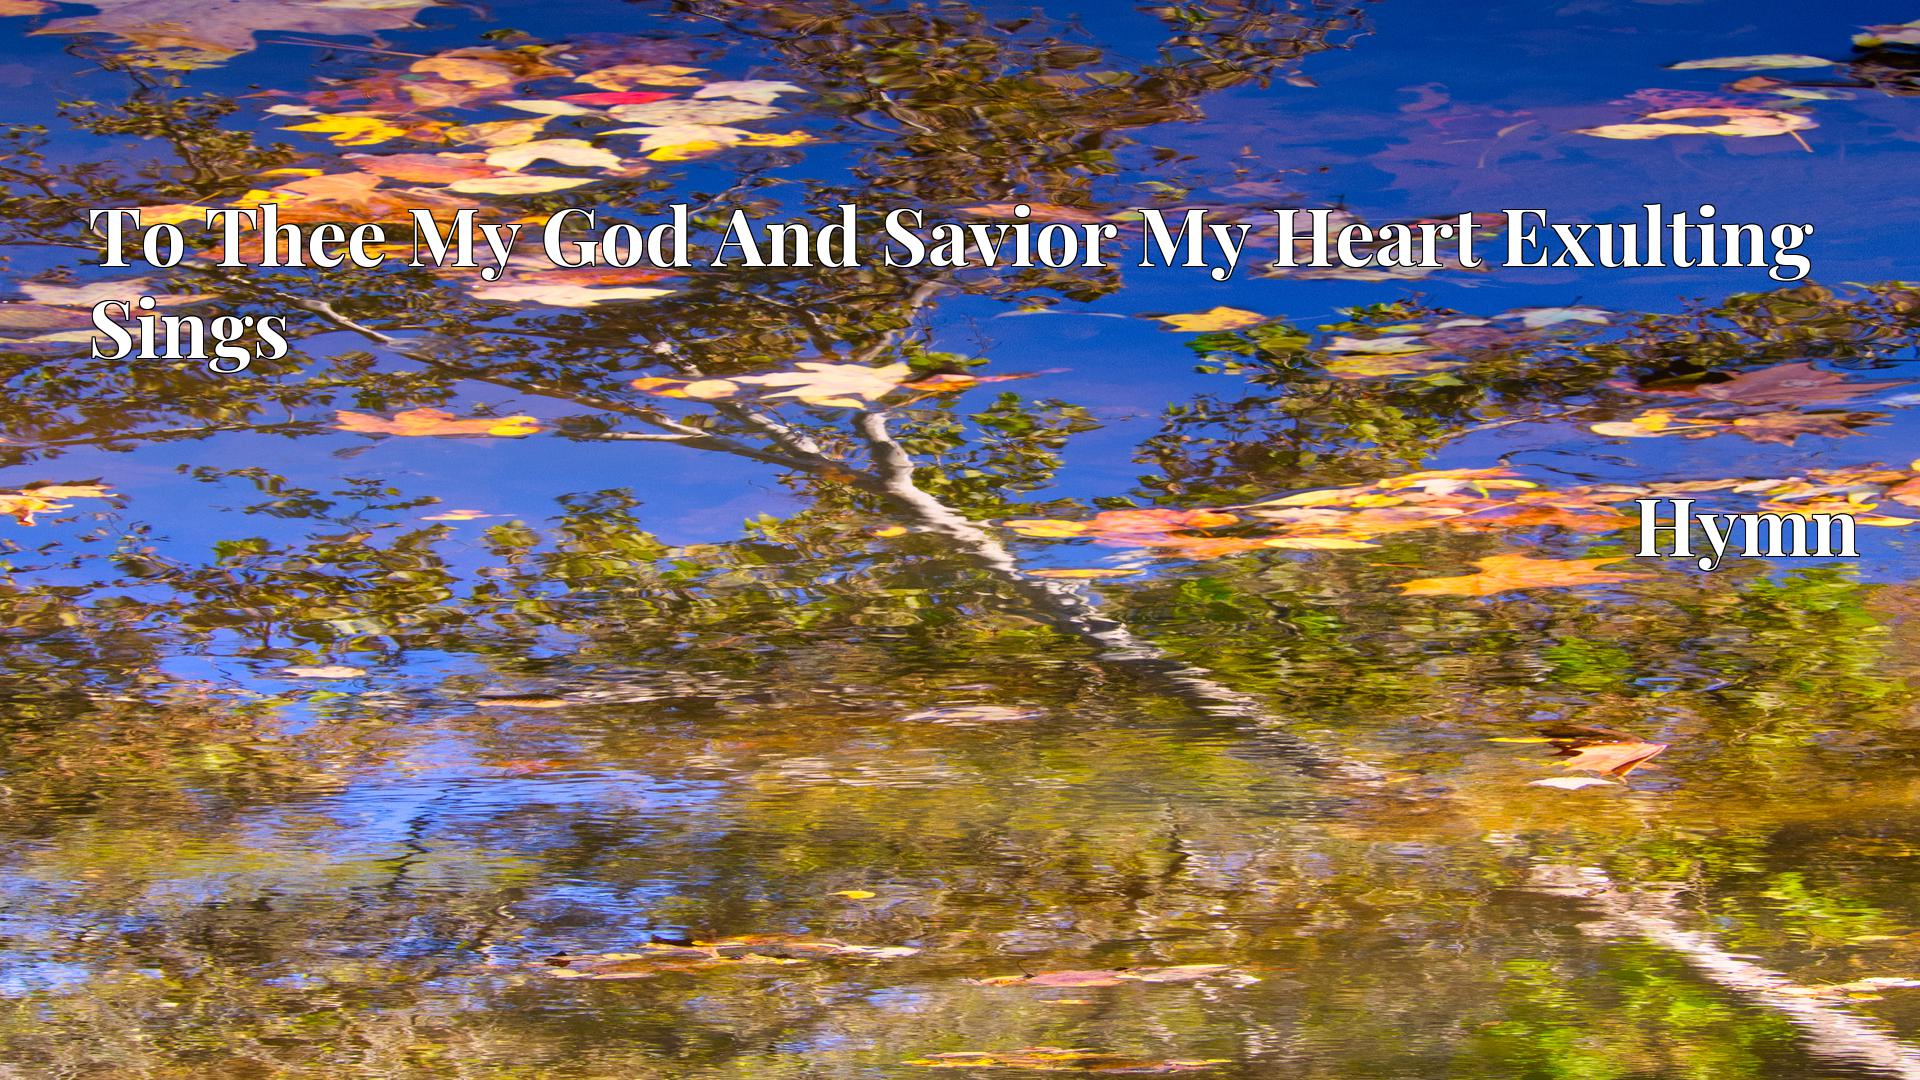 To Thee My God And Savior My Heart Exulting Sings - Hymn